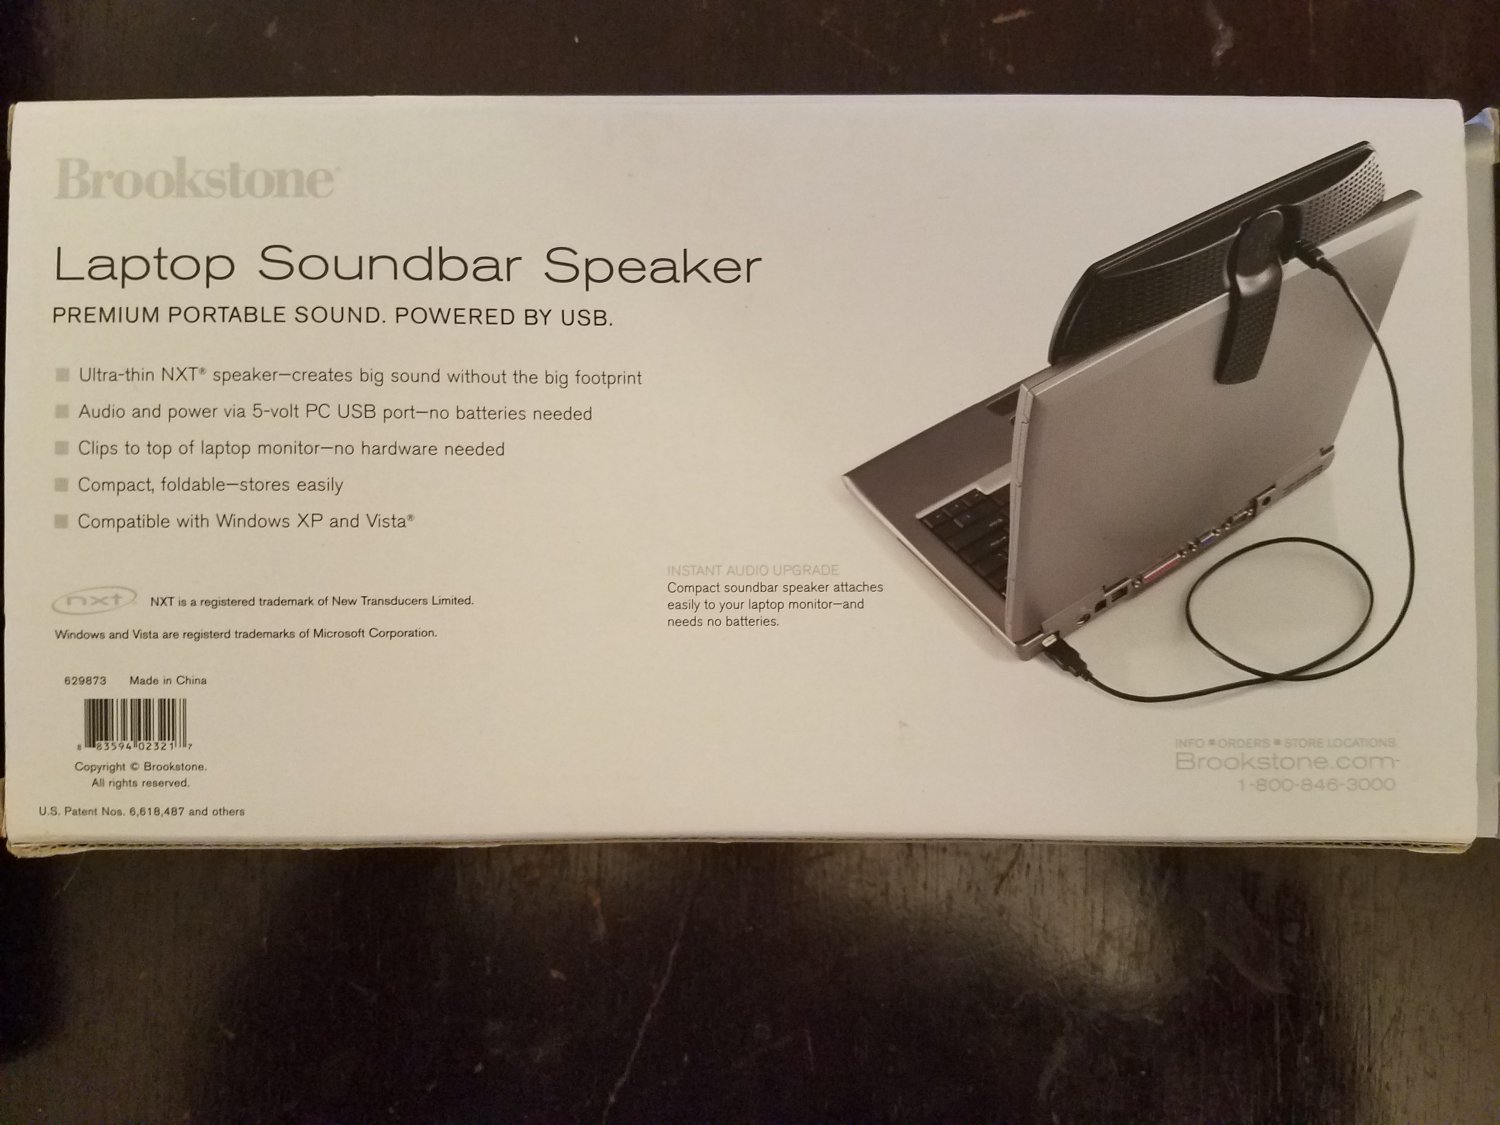 Brookstone Laptop Soundbar Speaker